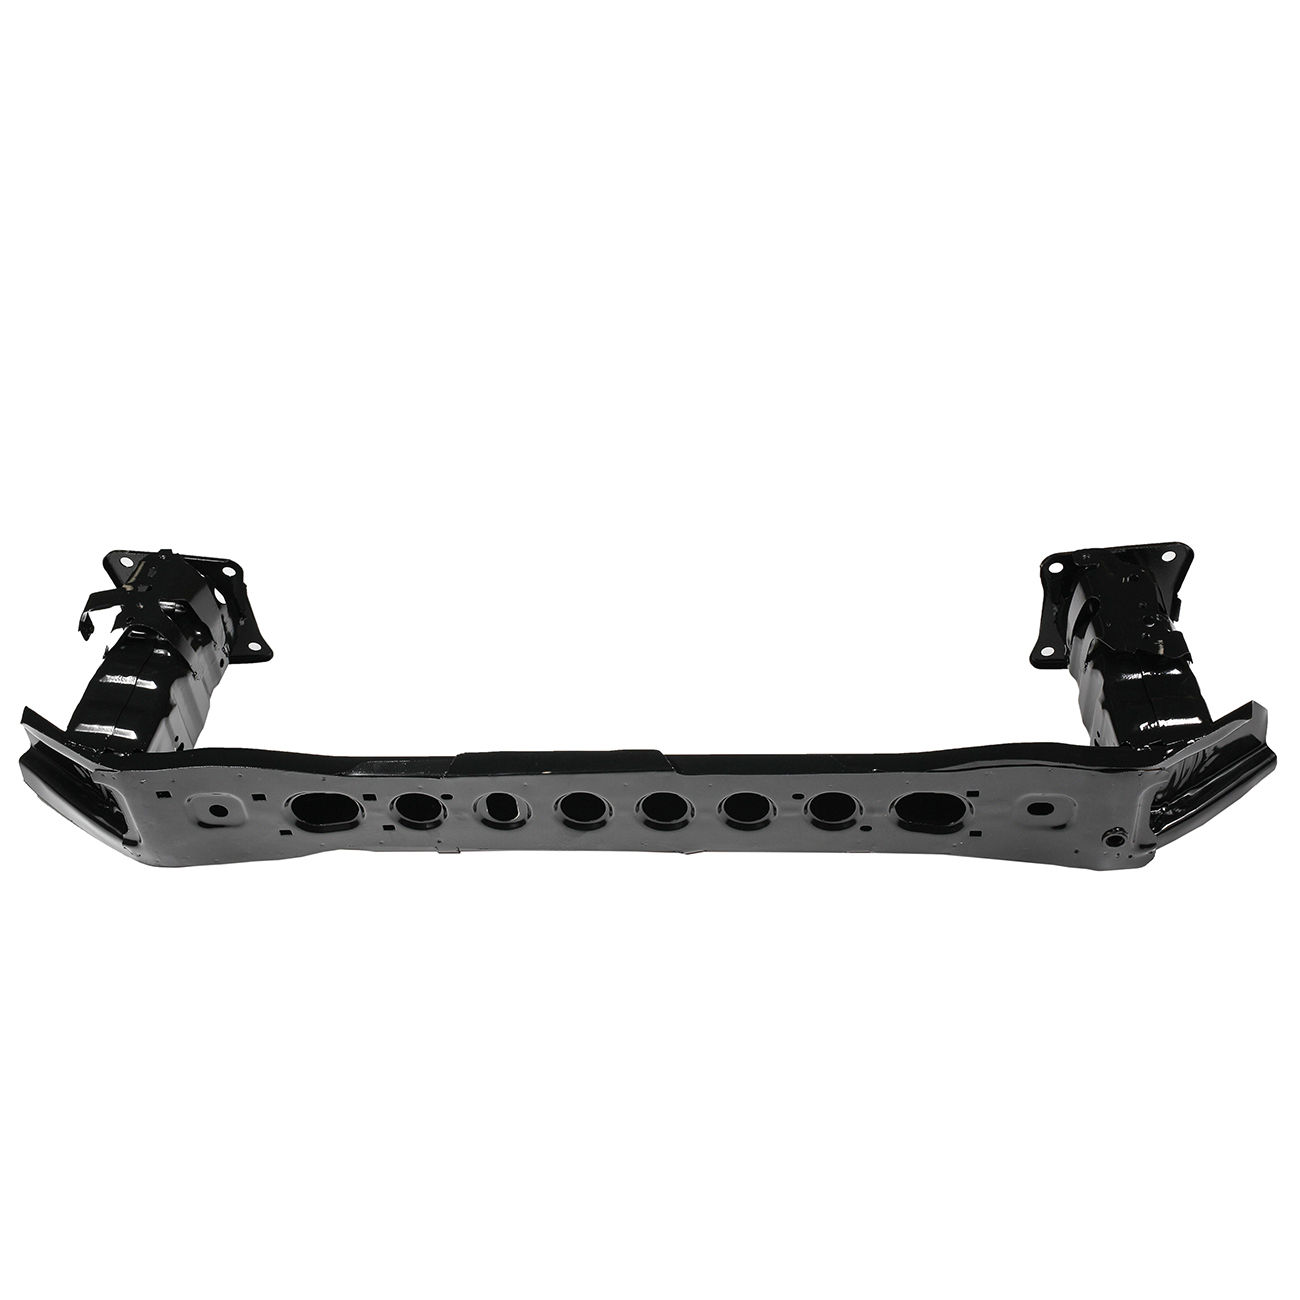 AUTOPA CP9Z-17757-A Front Bumper Face Impact Bar Reinforcement Cross Member for 2012-2014 Ford Focus